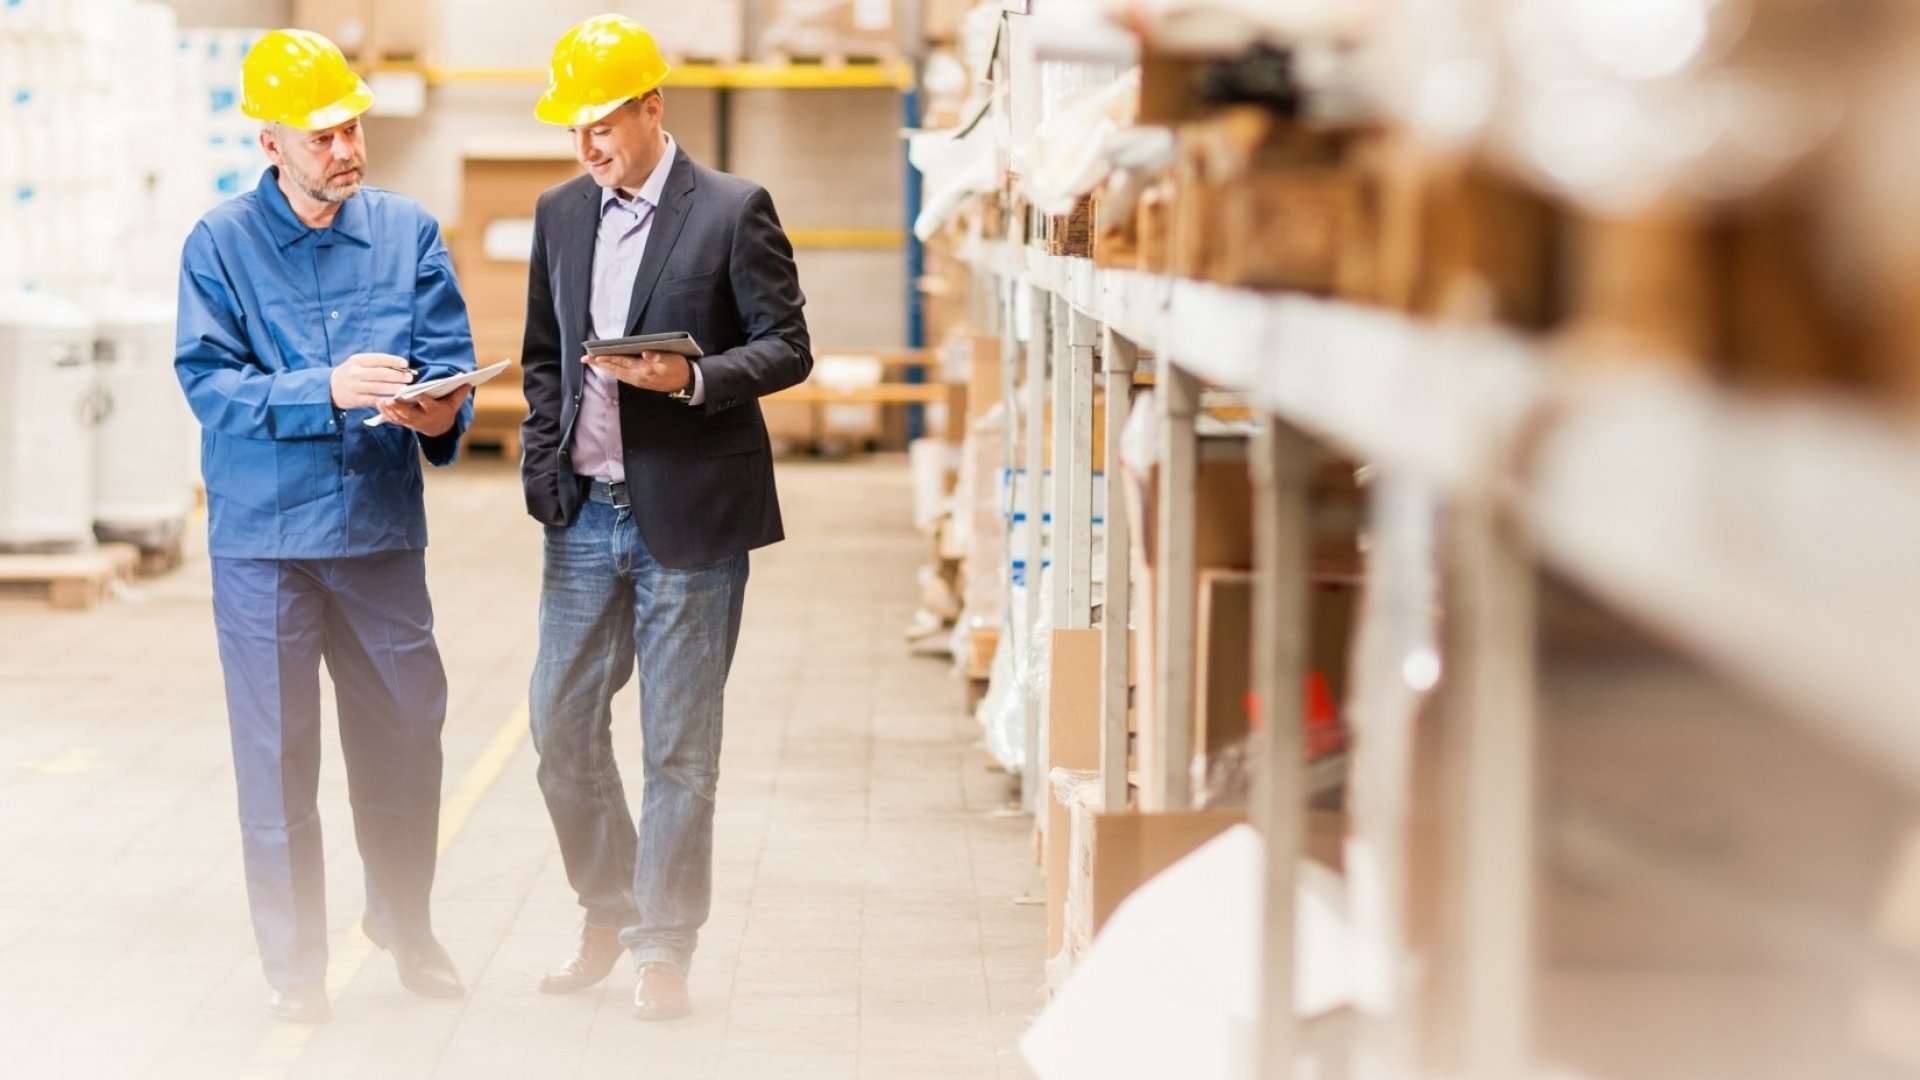 The 4 Top Leverage Points to Scale Your Manufacturing Company | Inc.com